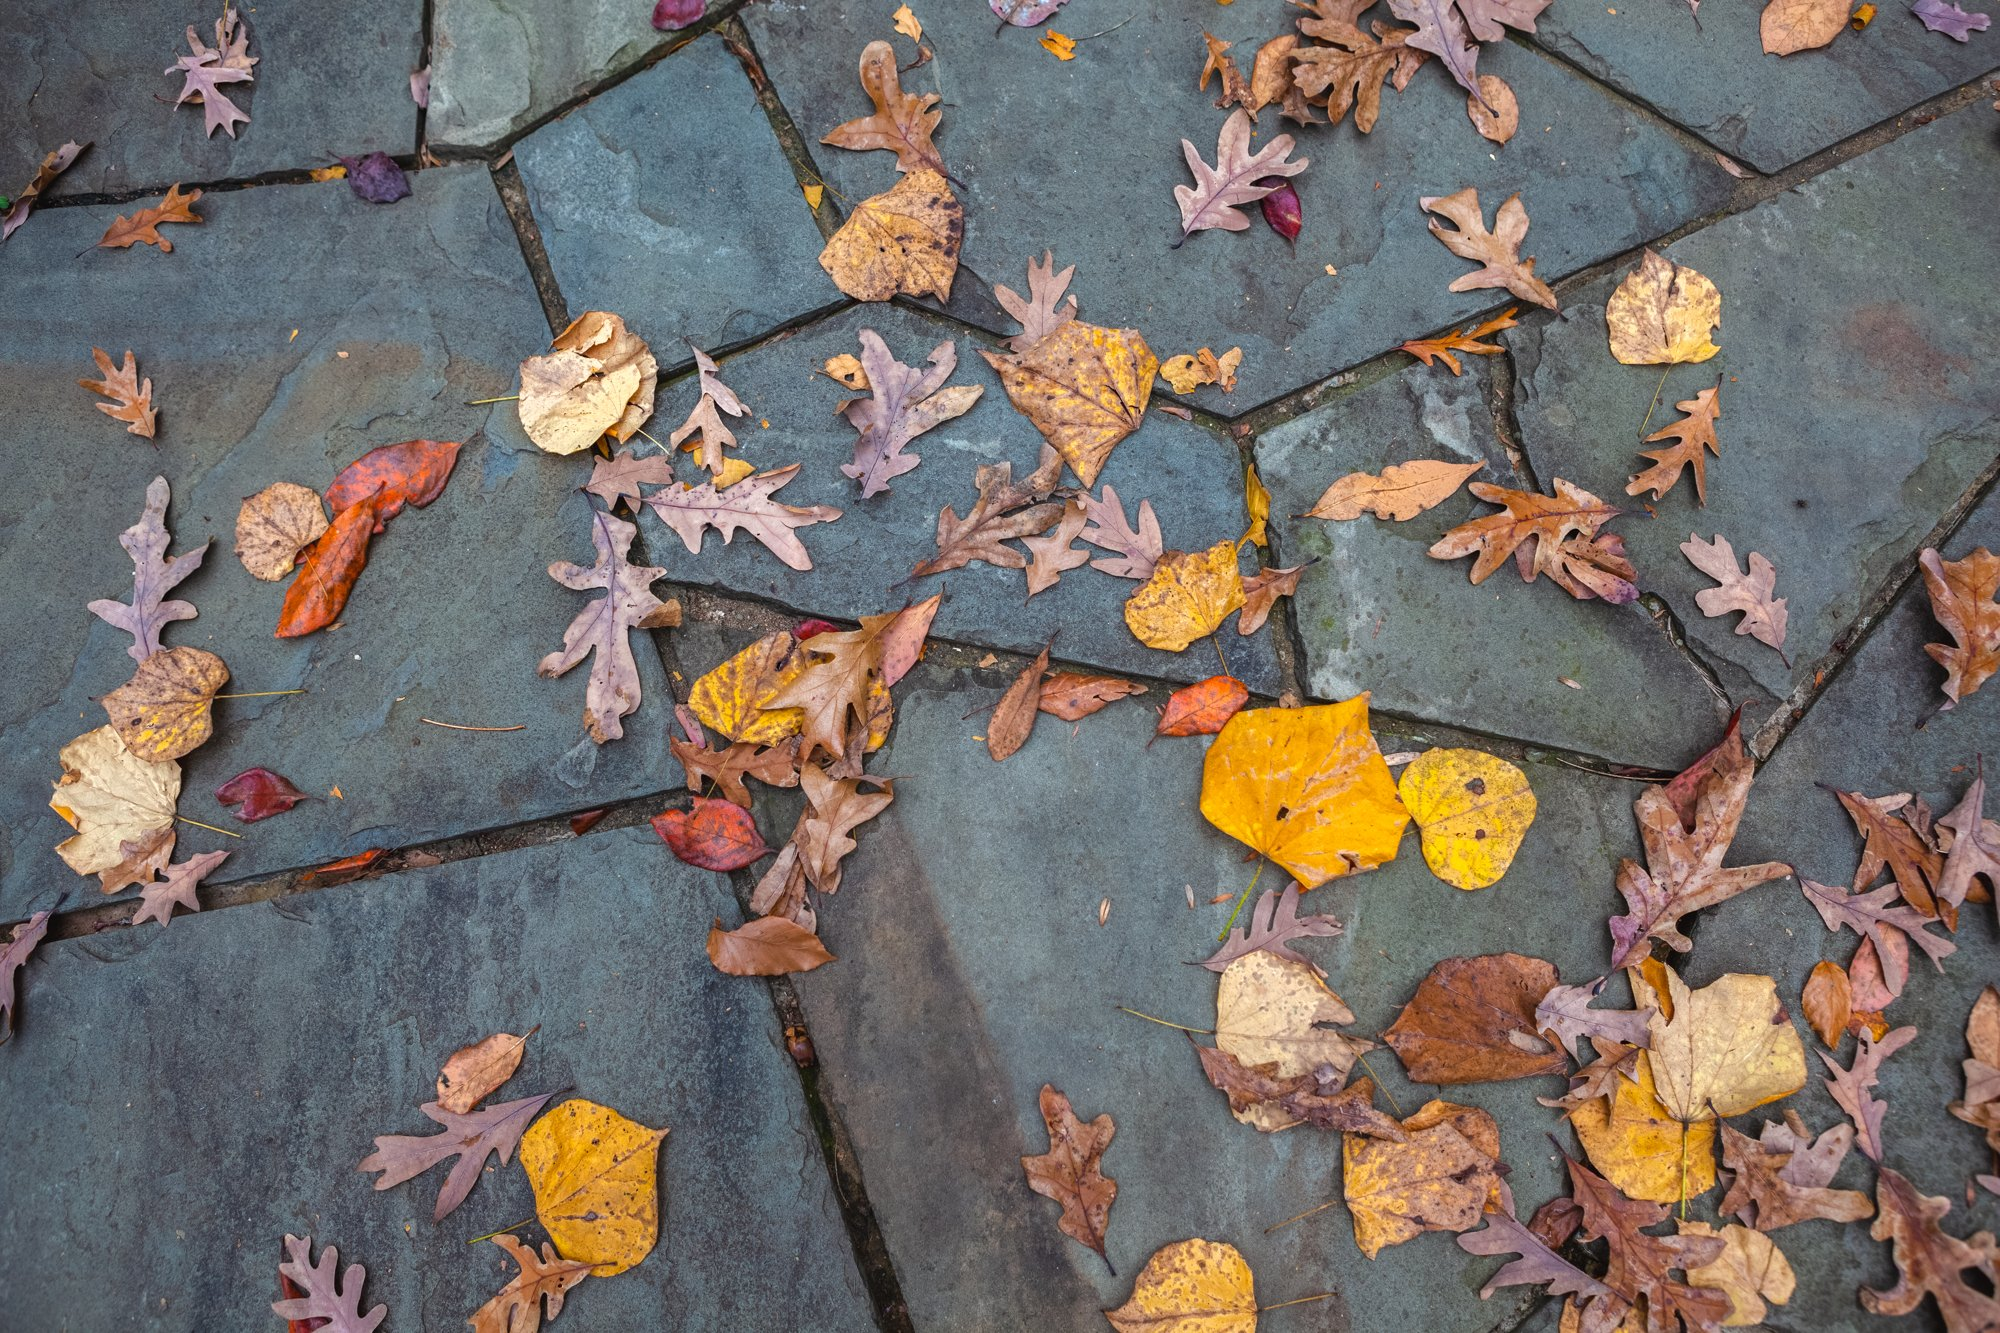 Fallen Leaves on a Path